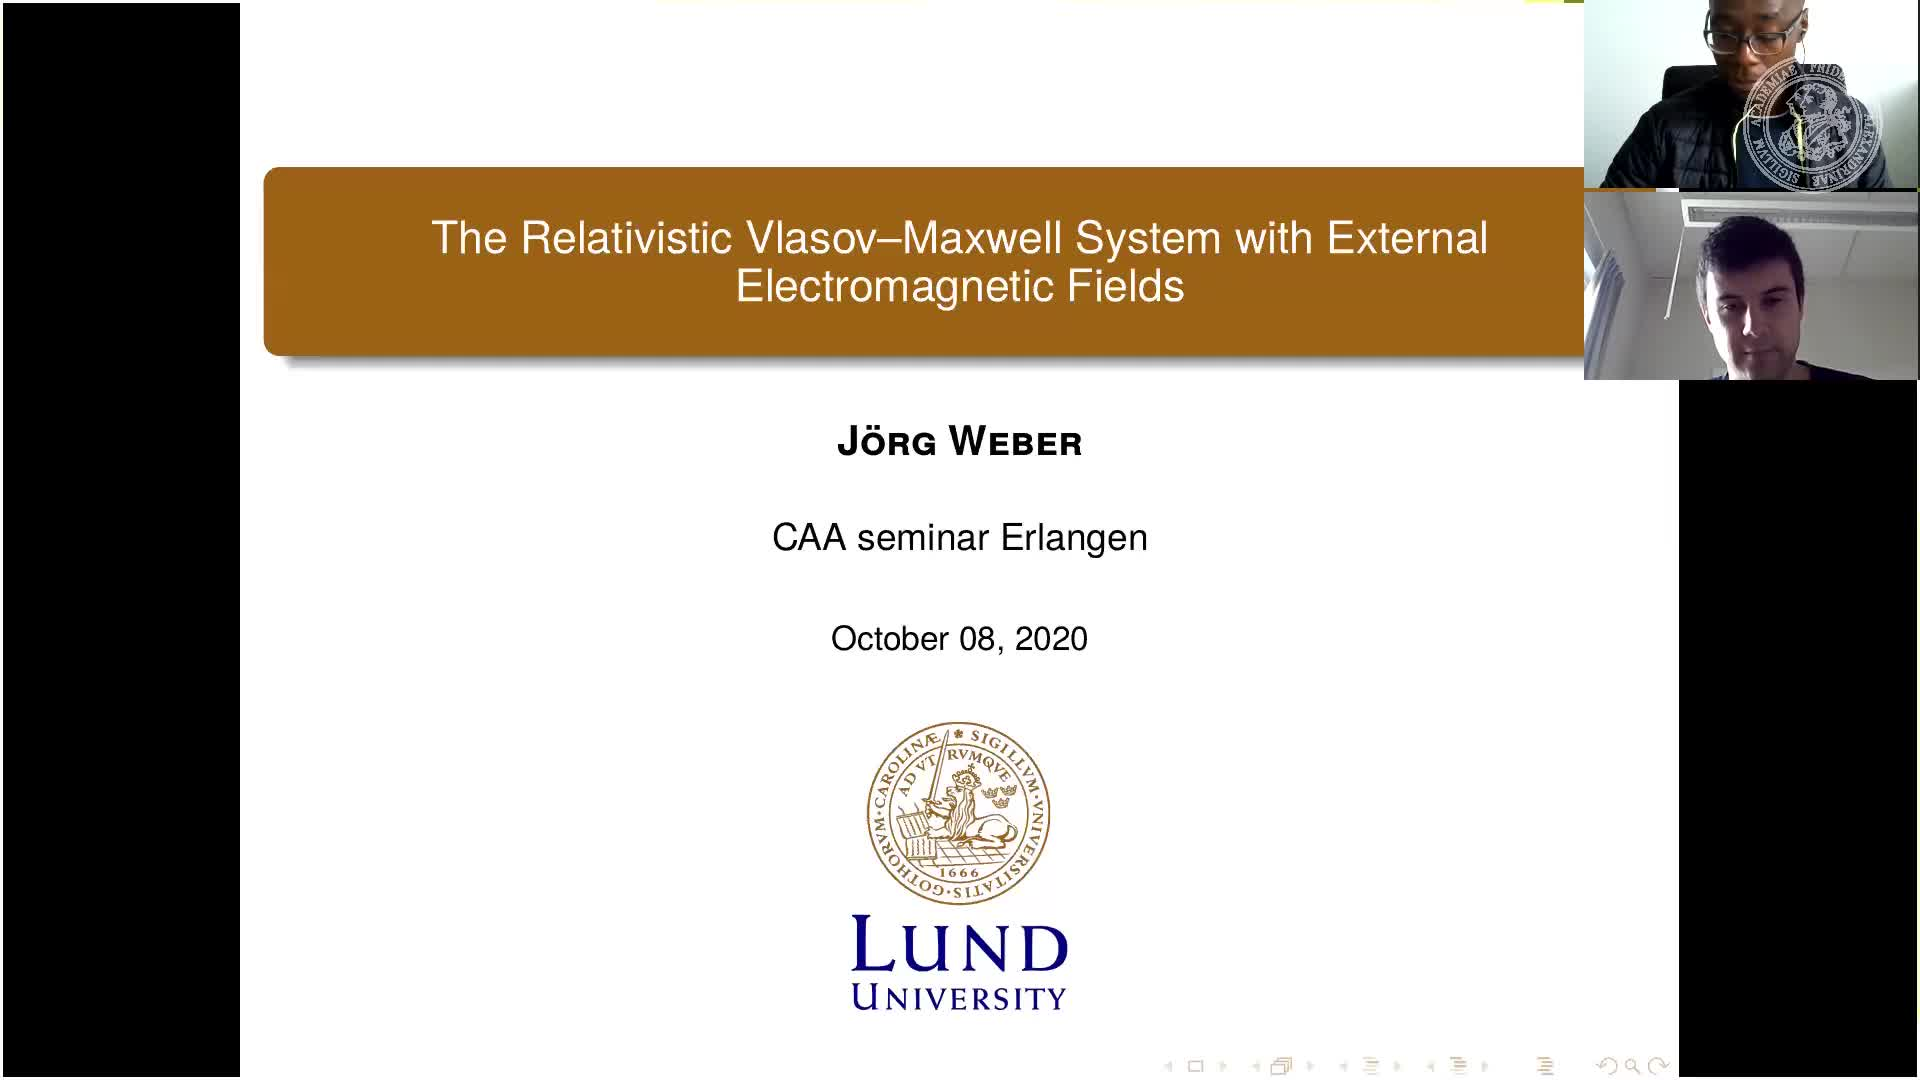 The Relativistic Vlasov–Maxwell System with External Electromagnetic Fields (Joerg Weber, Lund University) preview image